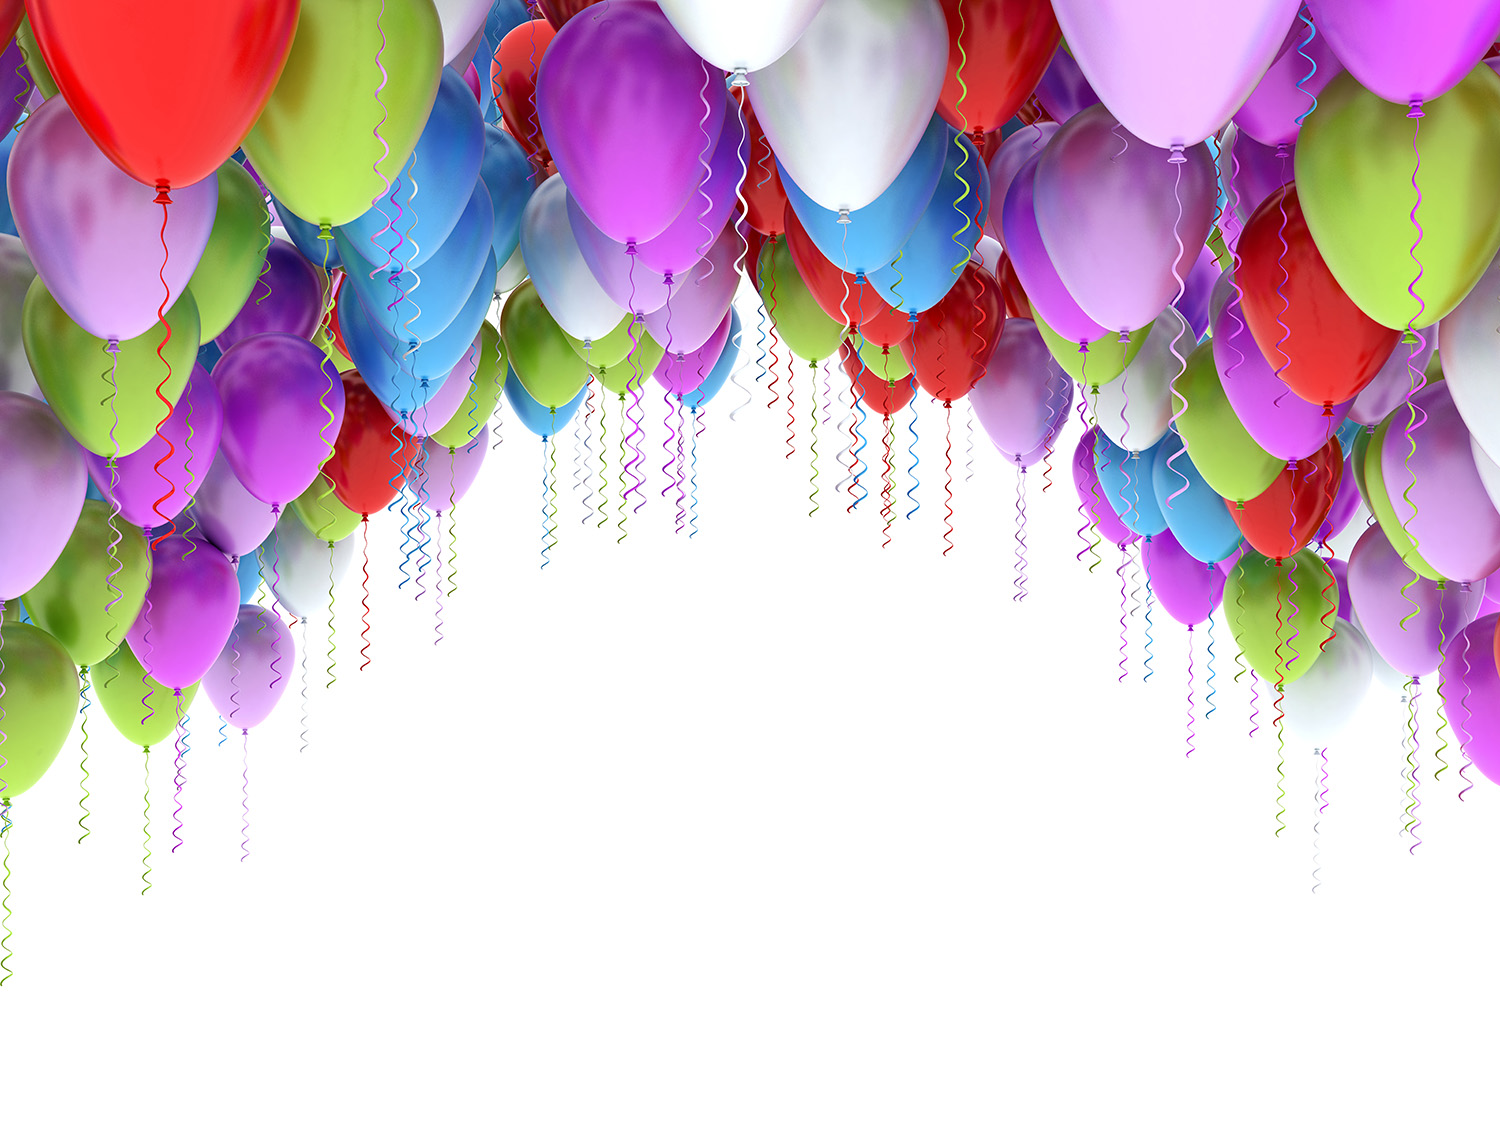 Colorful balloons 50054